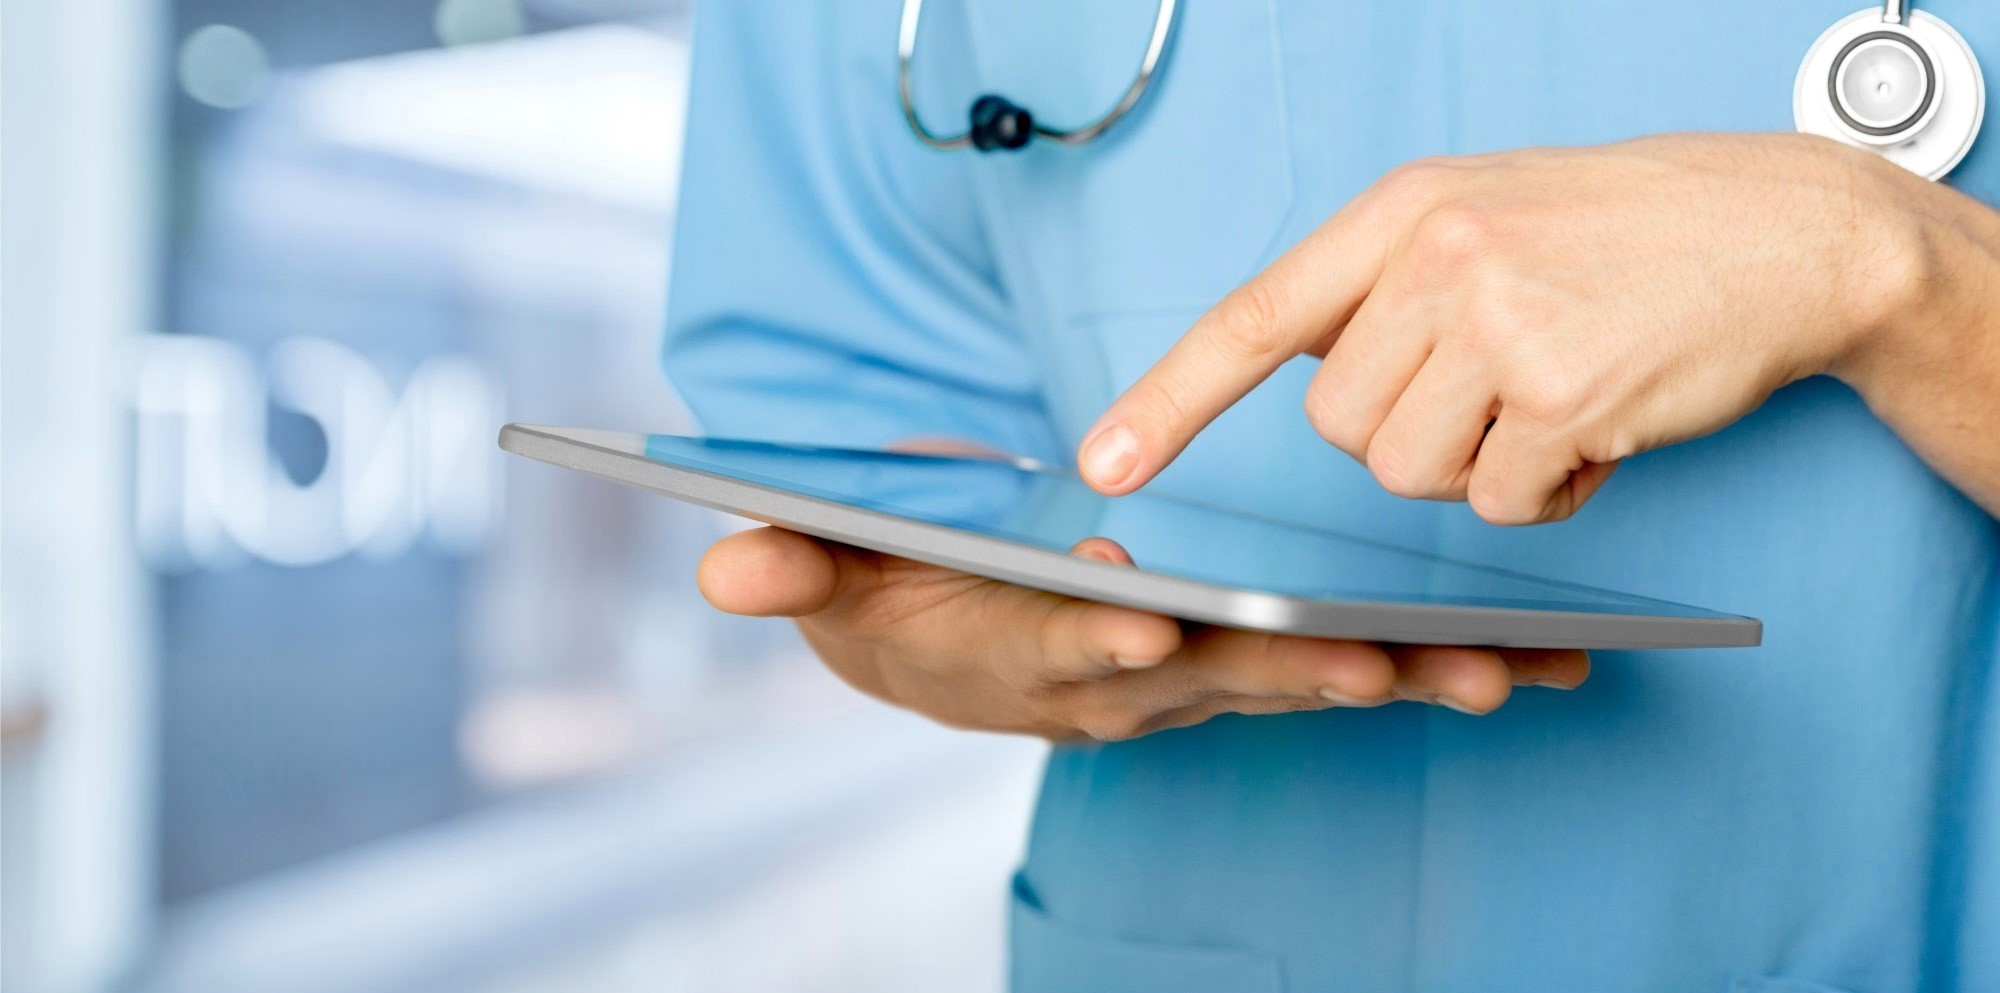 Healthcare data solutions tailored to meet your specific requirements